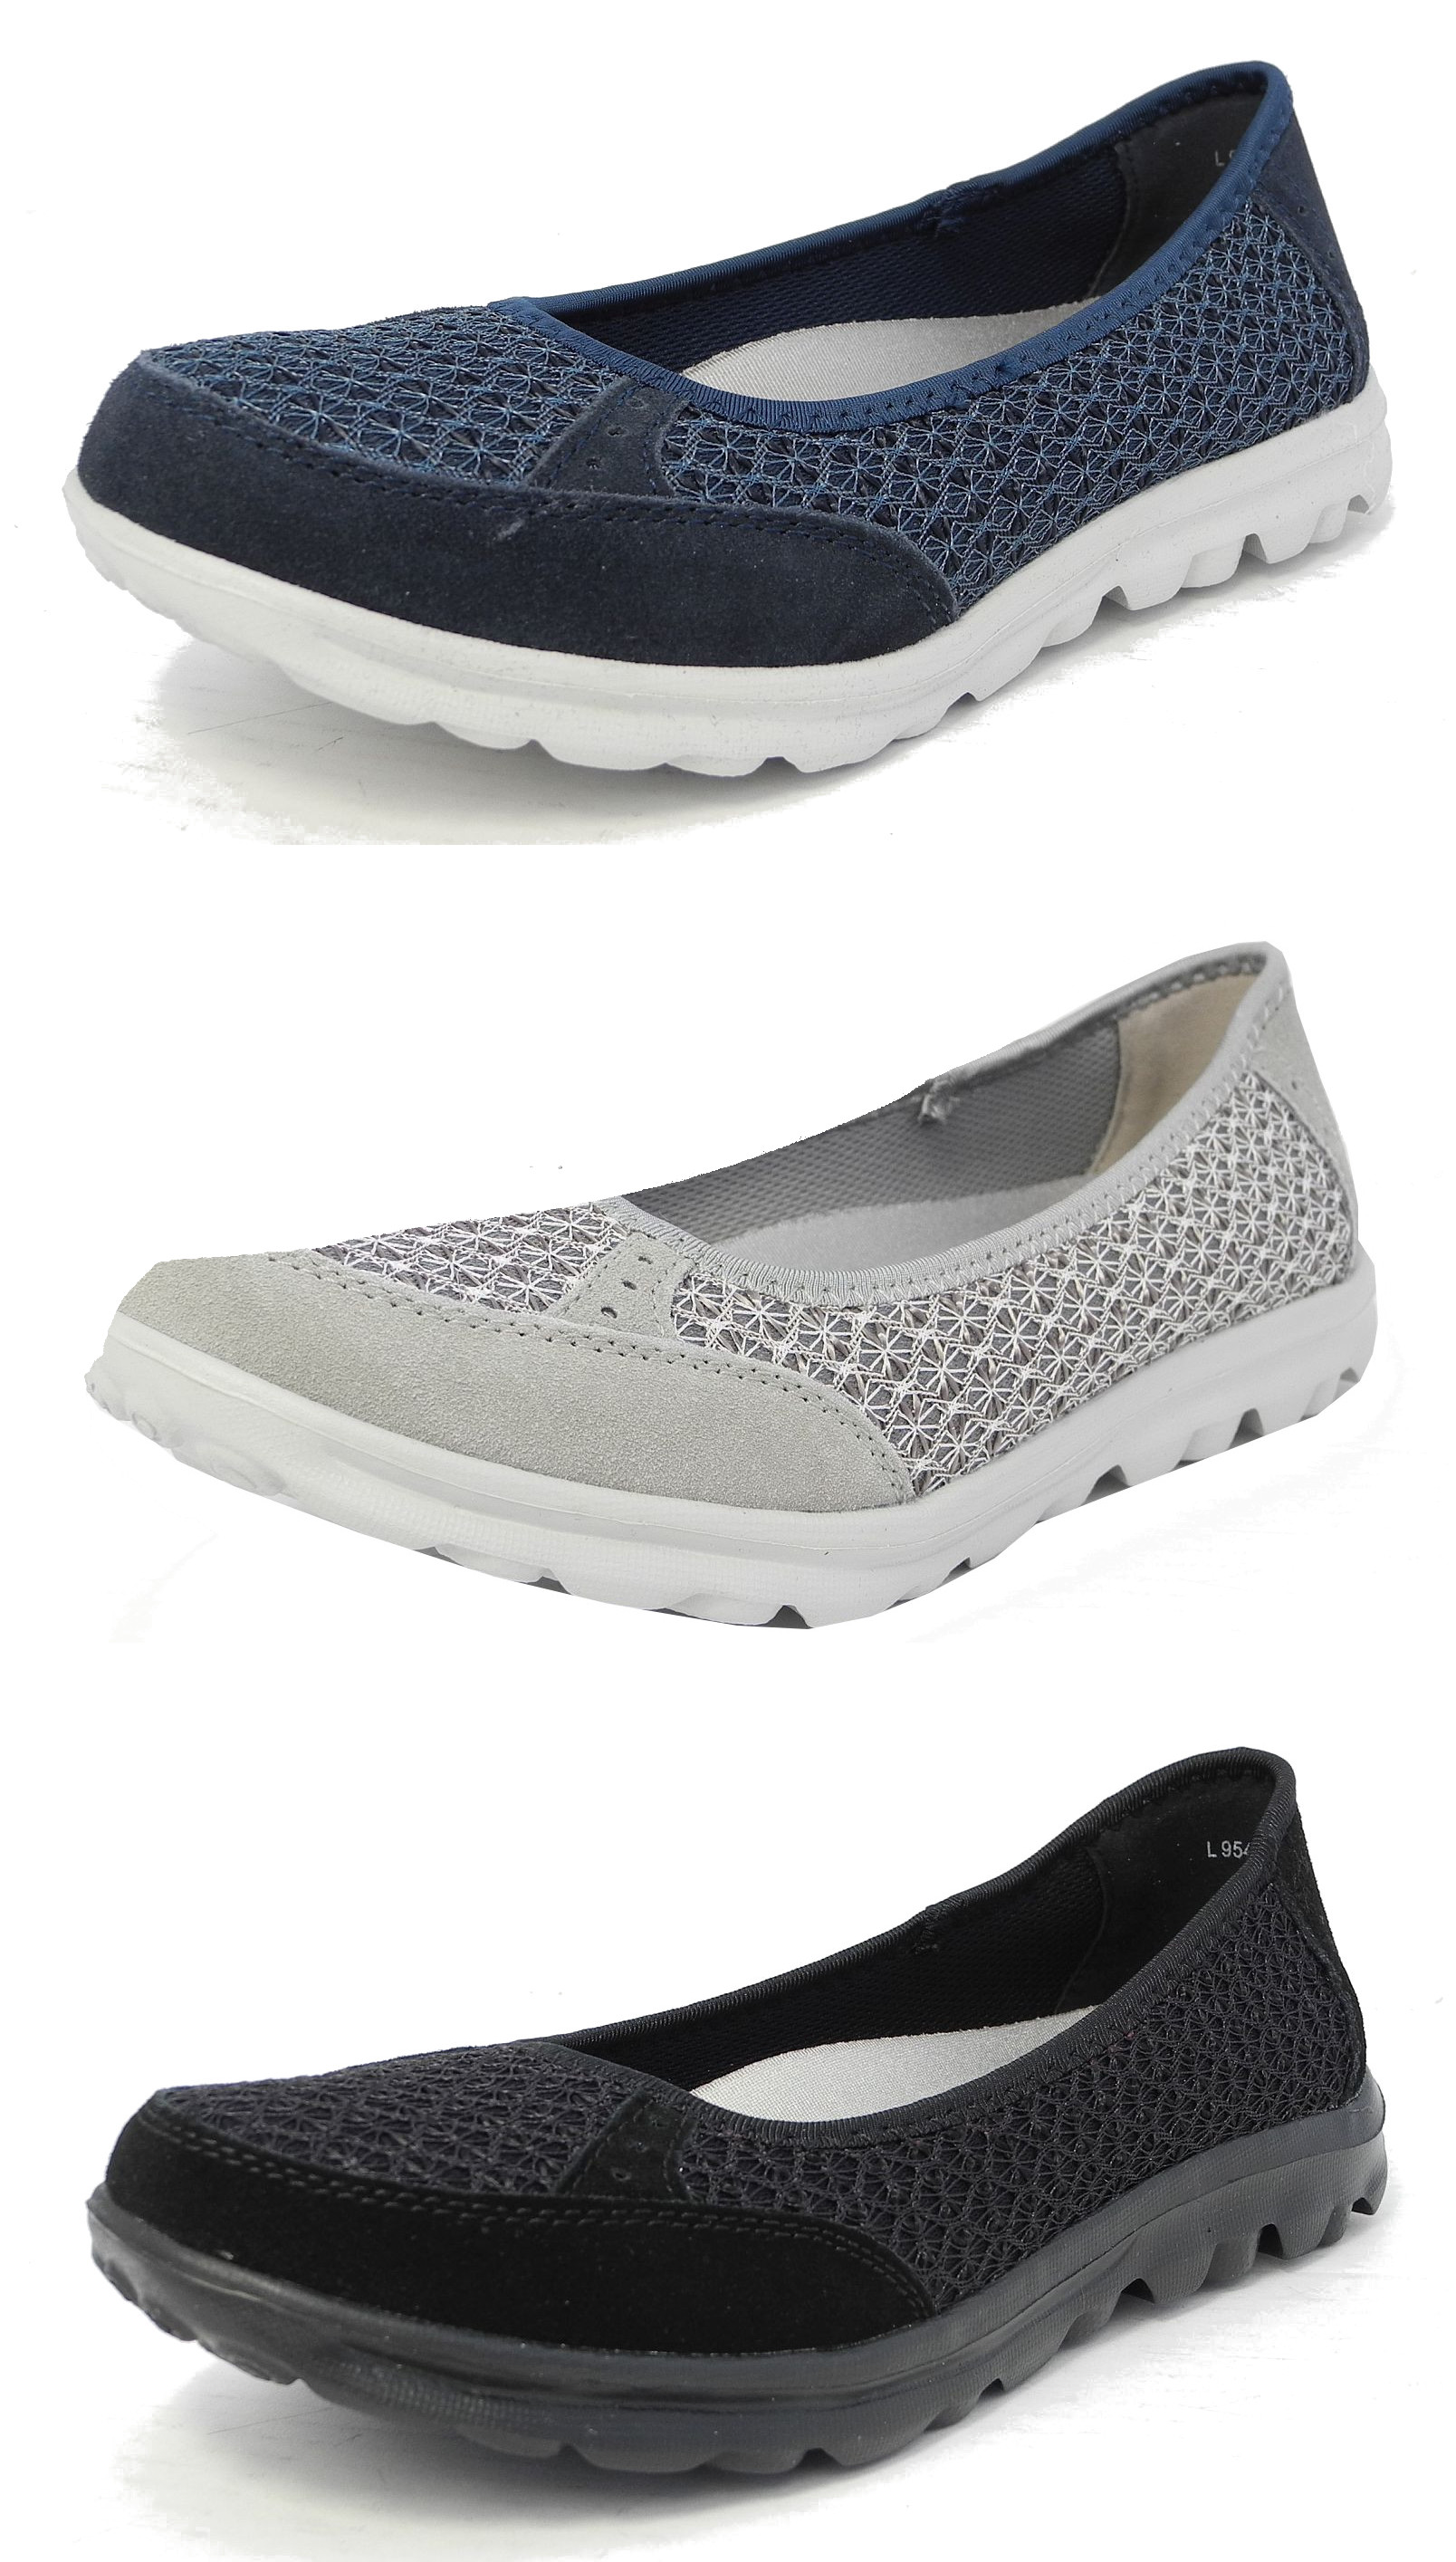 Ladies Slip On Elasticated Upper Leather Insole Lightweight Casual Shoes Low Heel Size 3-9